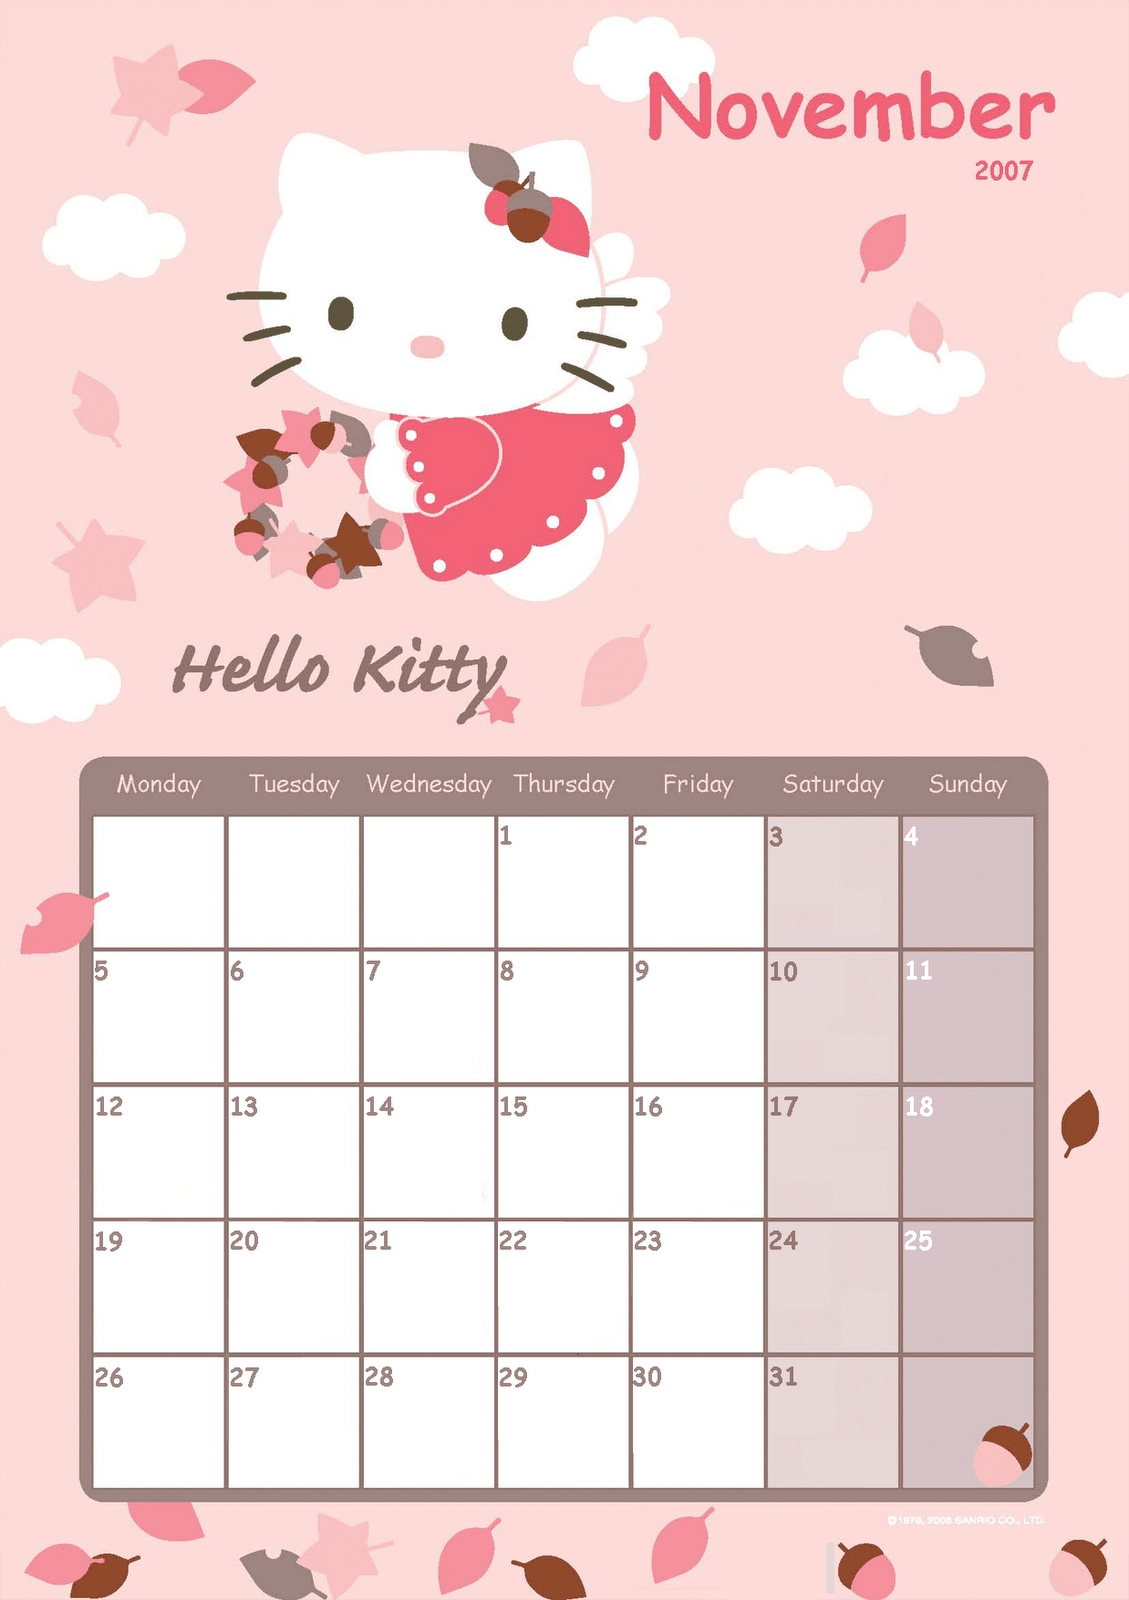 Hello Kitty Calendar 2016 Template | Calendar Template 2017